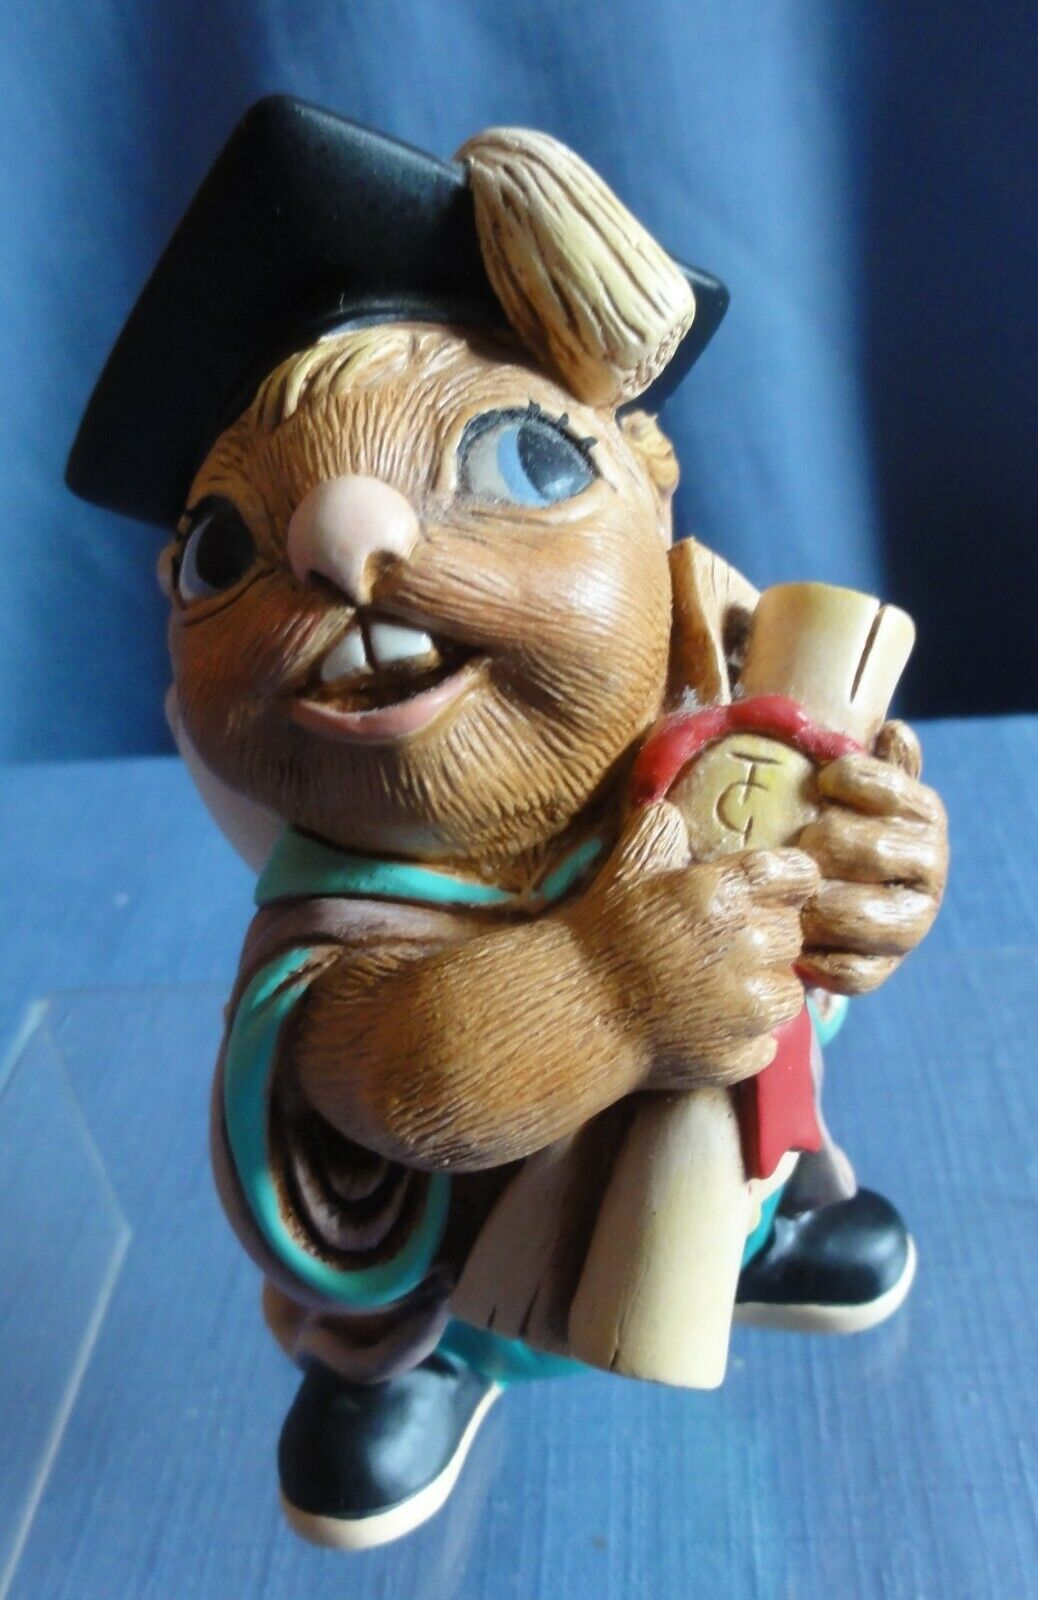 Pendelfin THE GRADUATE Made in England holding his diploma